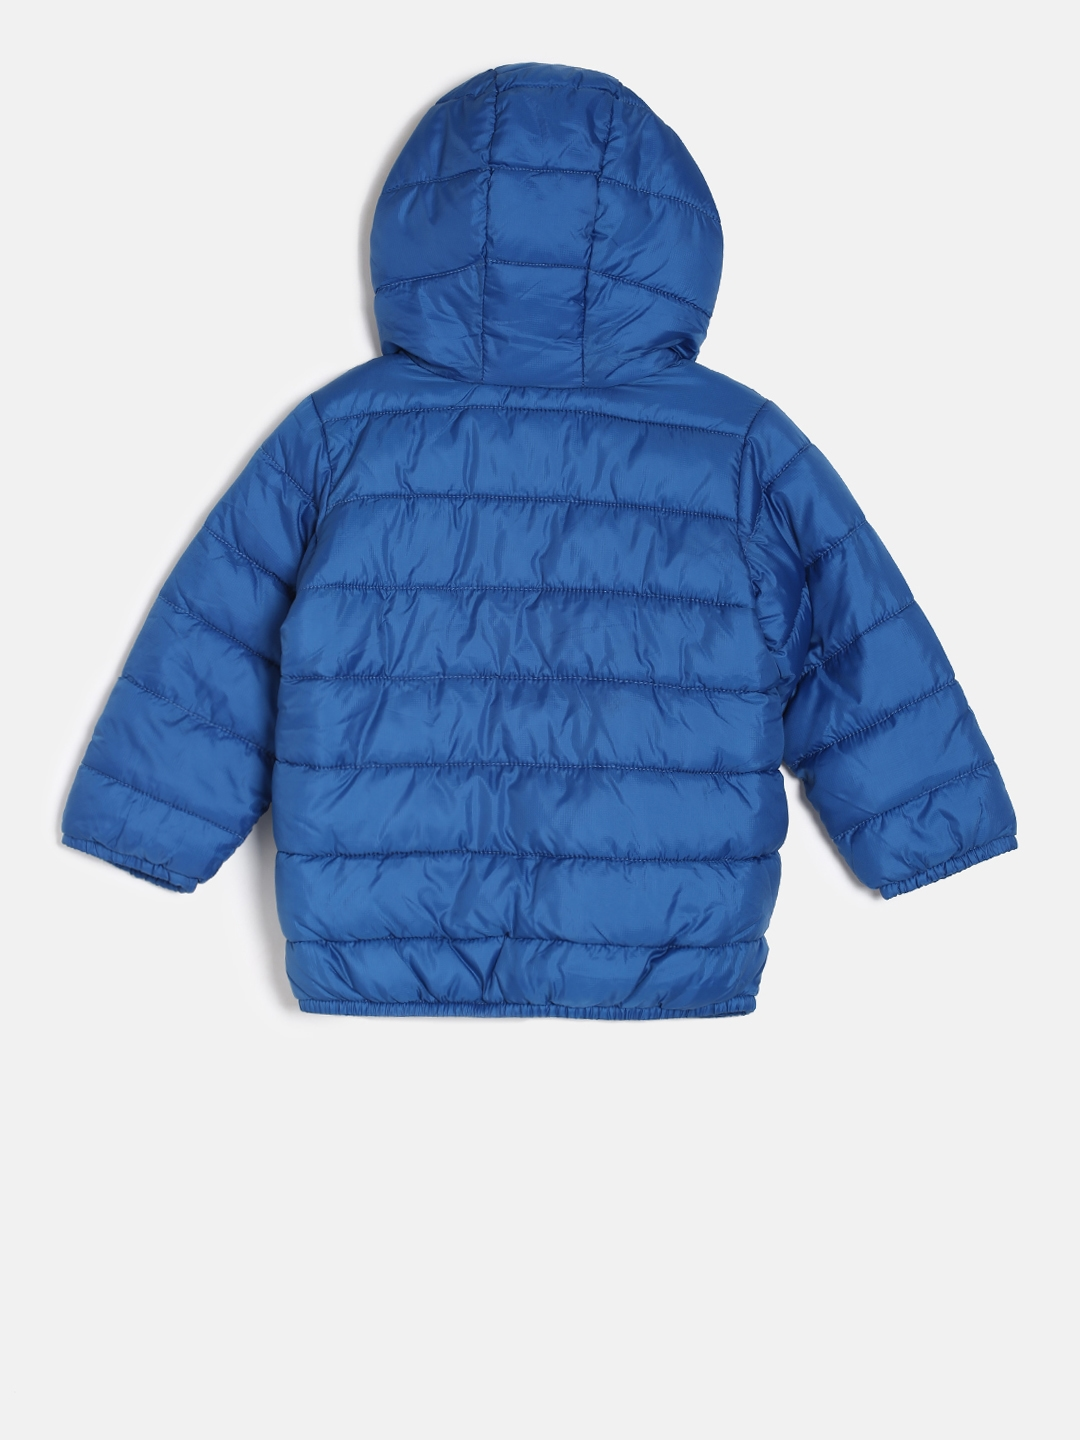 761dde4a5 Buy The Childrens Place Boys Blue Solid Windcheater Puffer Jacket ...